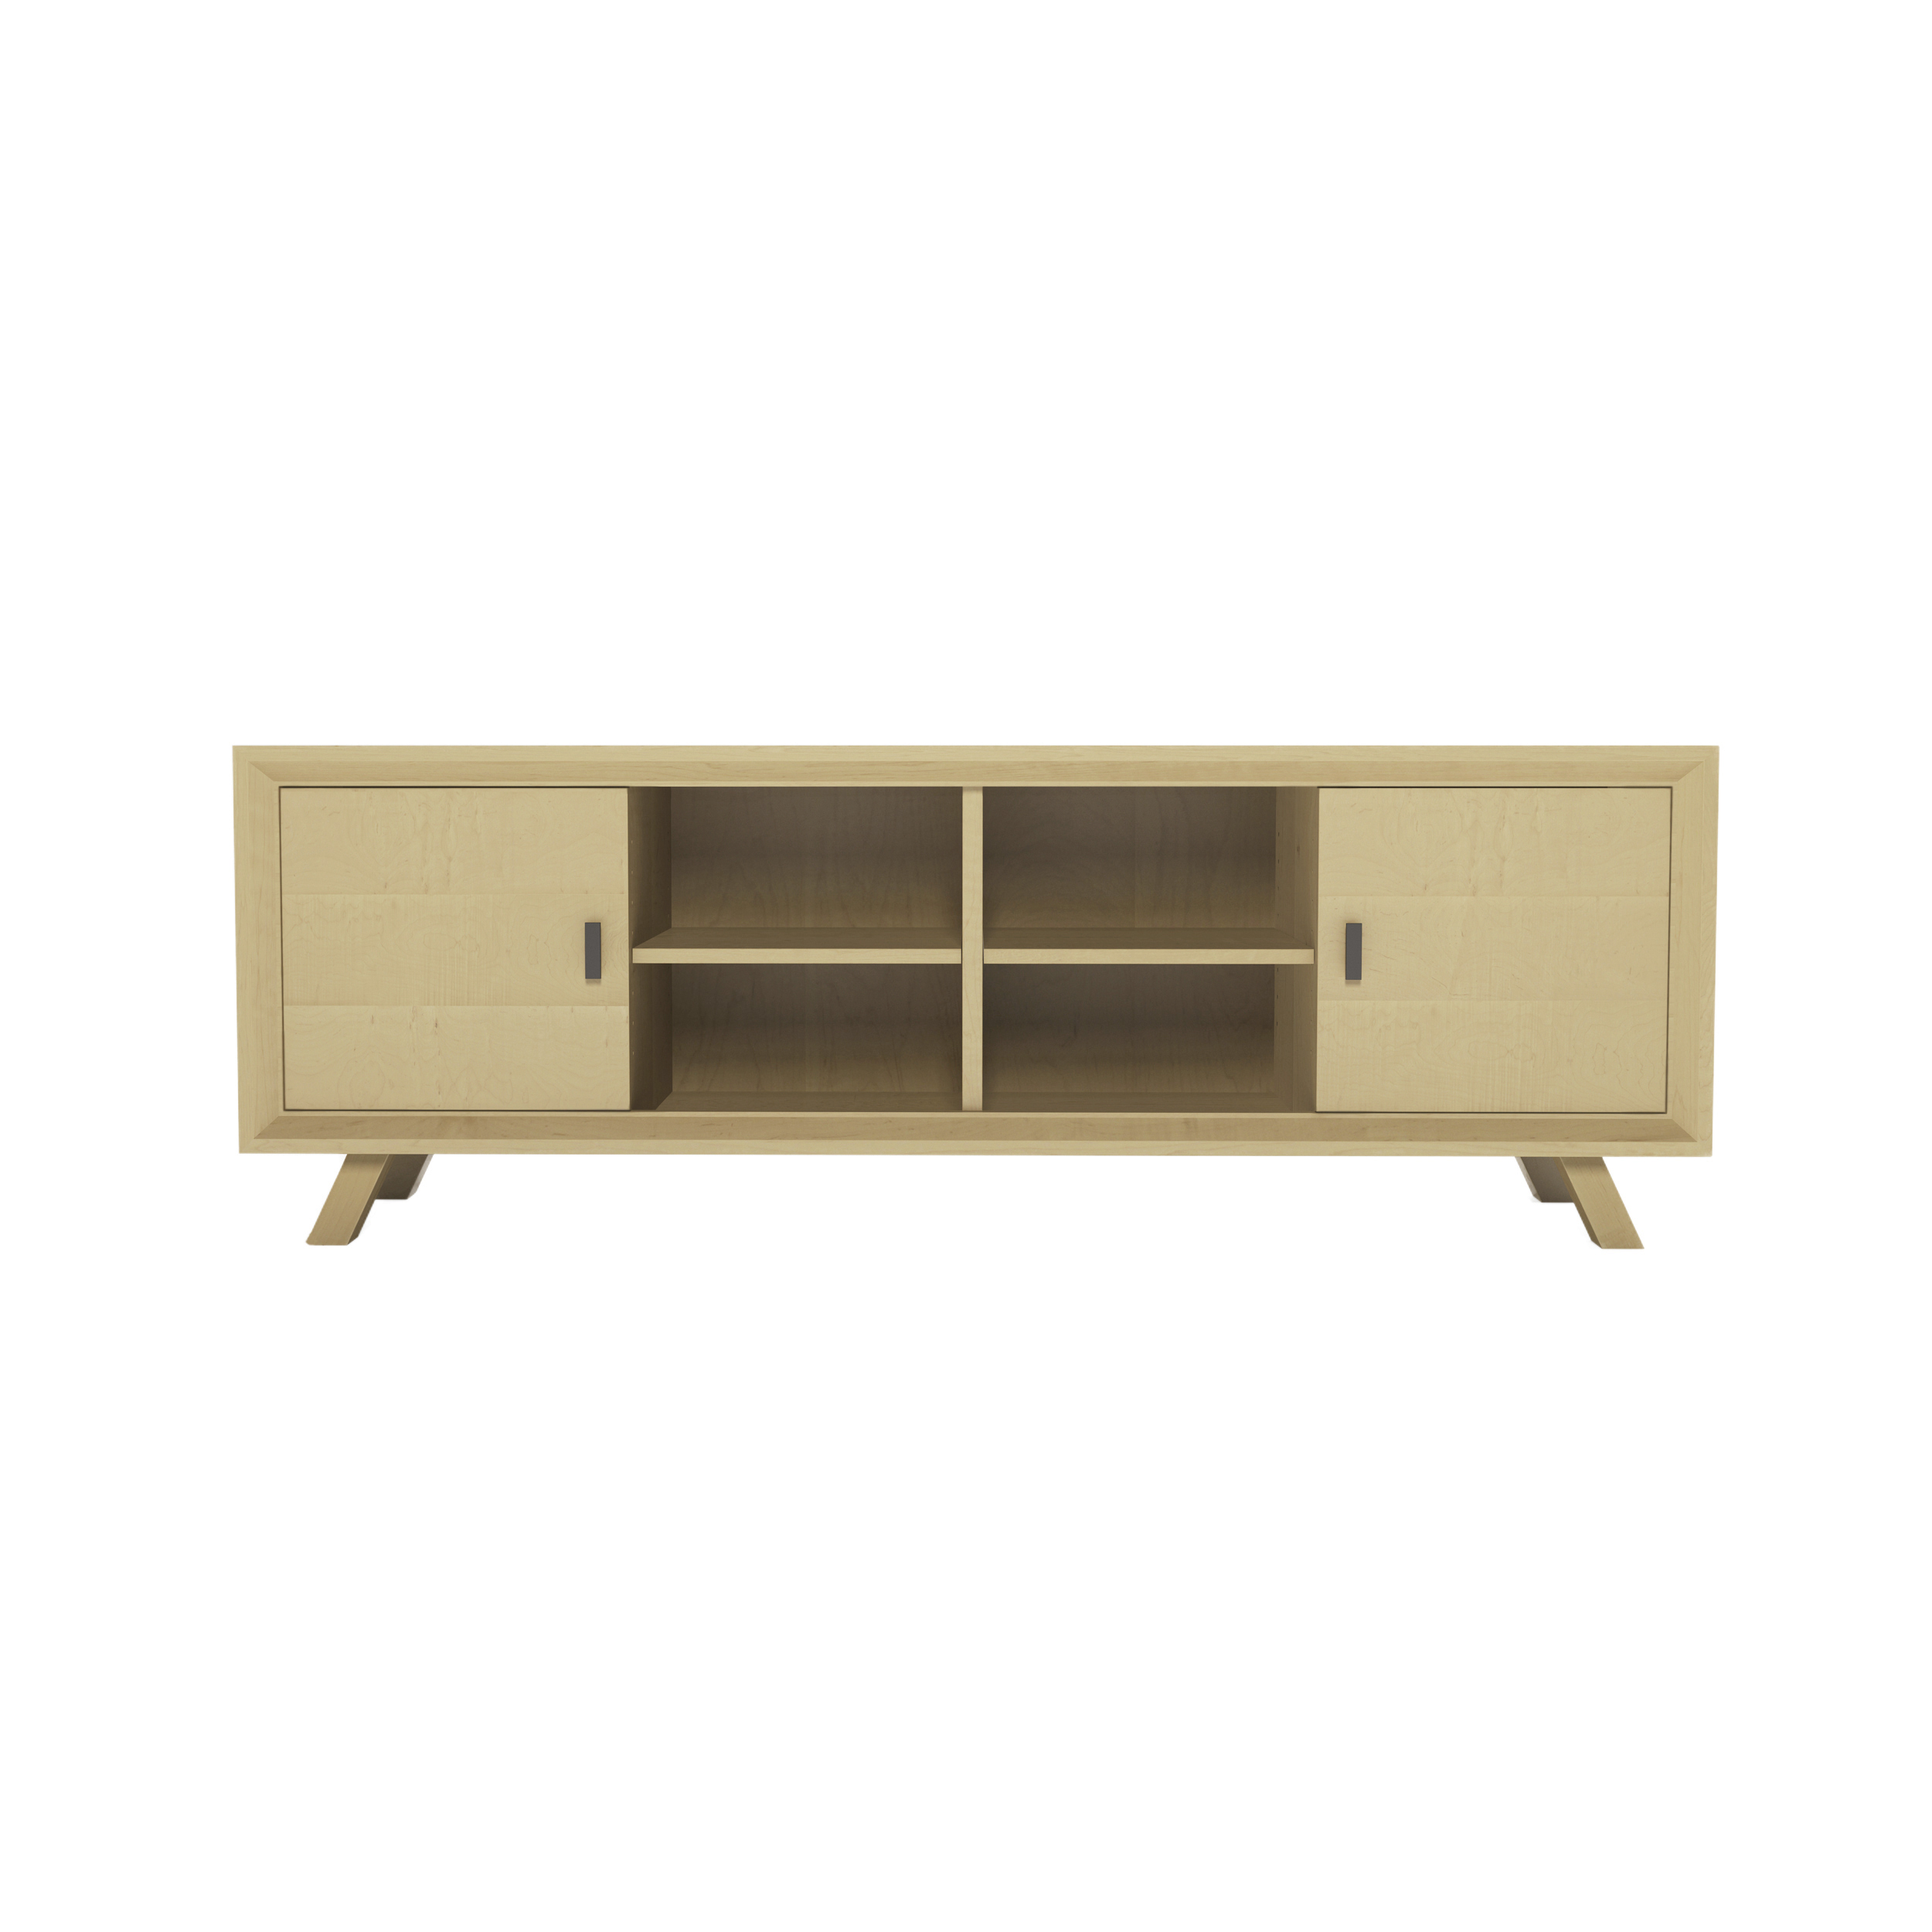 Series 555 Media Cabinet With Two Doors At 72″ In Width